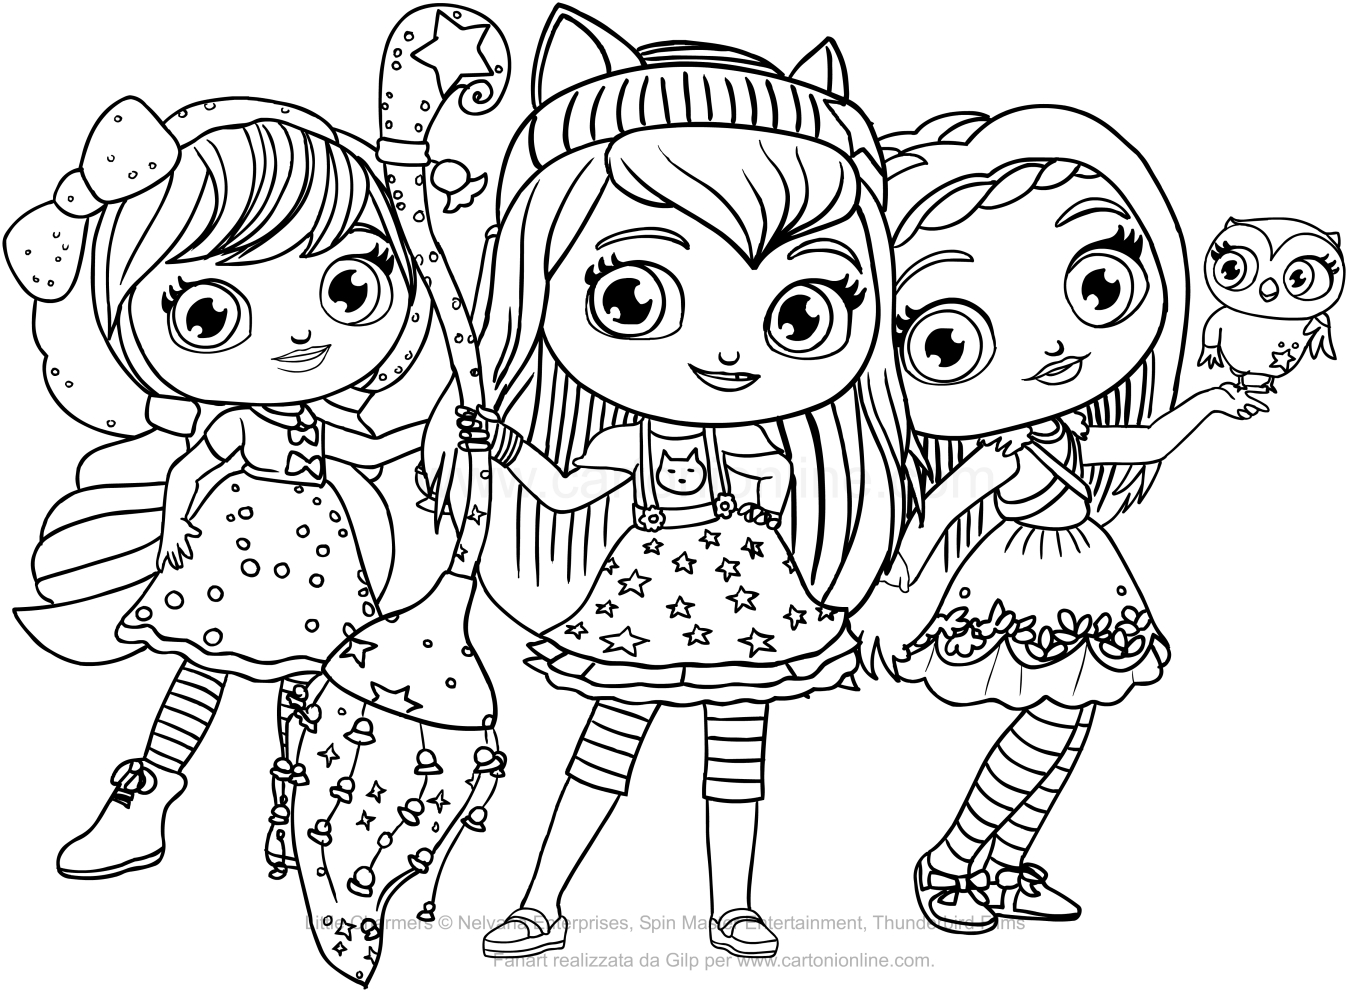 coloring little charmers little charmers coloring pages at getcoloringscom free charmers little coloring